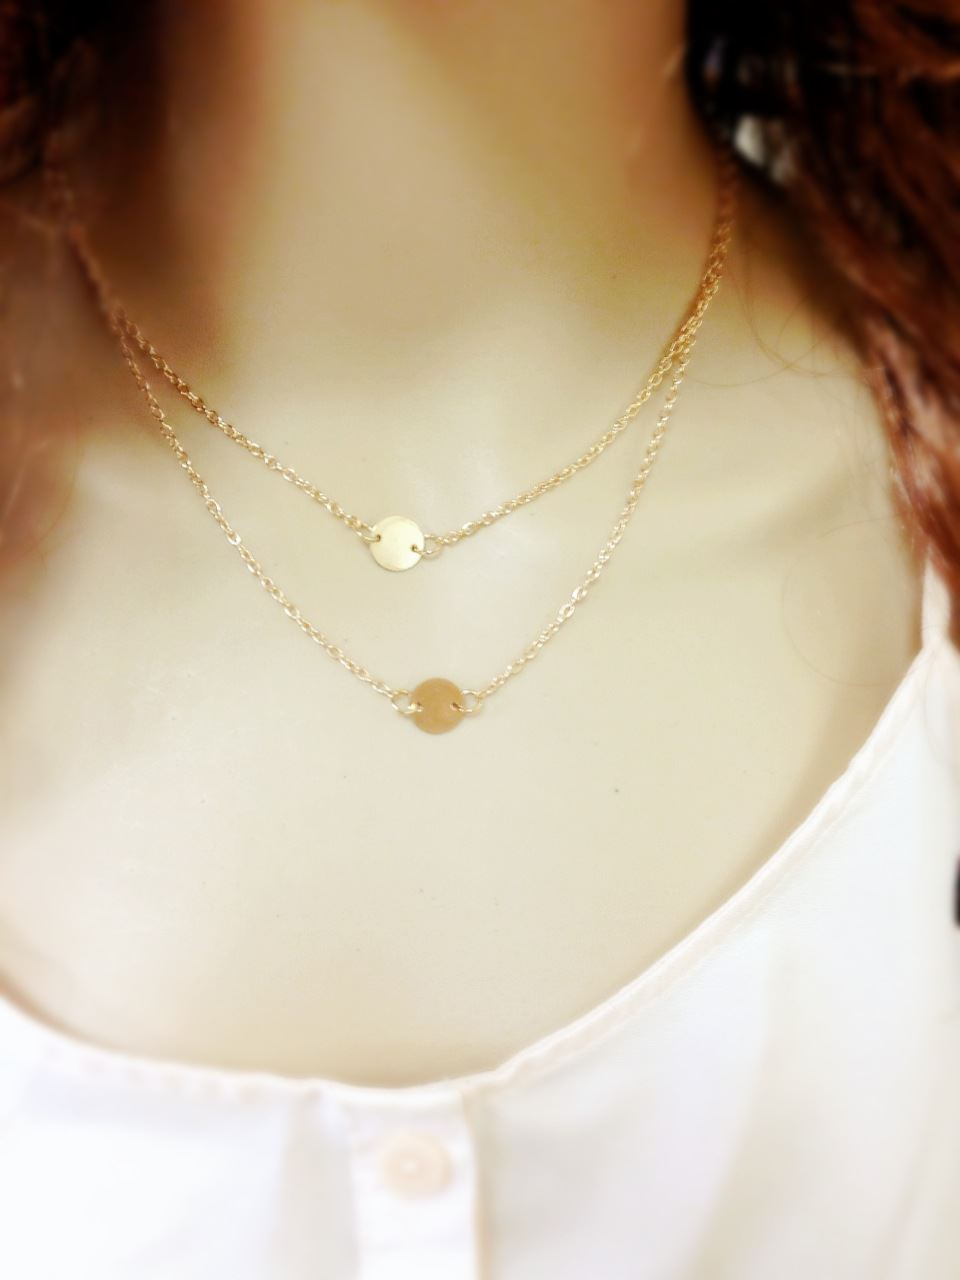 Celebrity Fashion Multi-Layers Geometry Charms Pendant Chain Necklace Lucky Gift